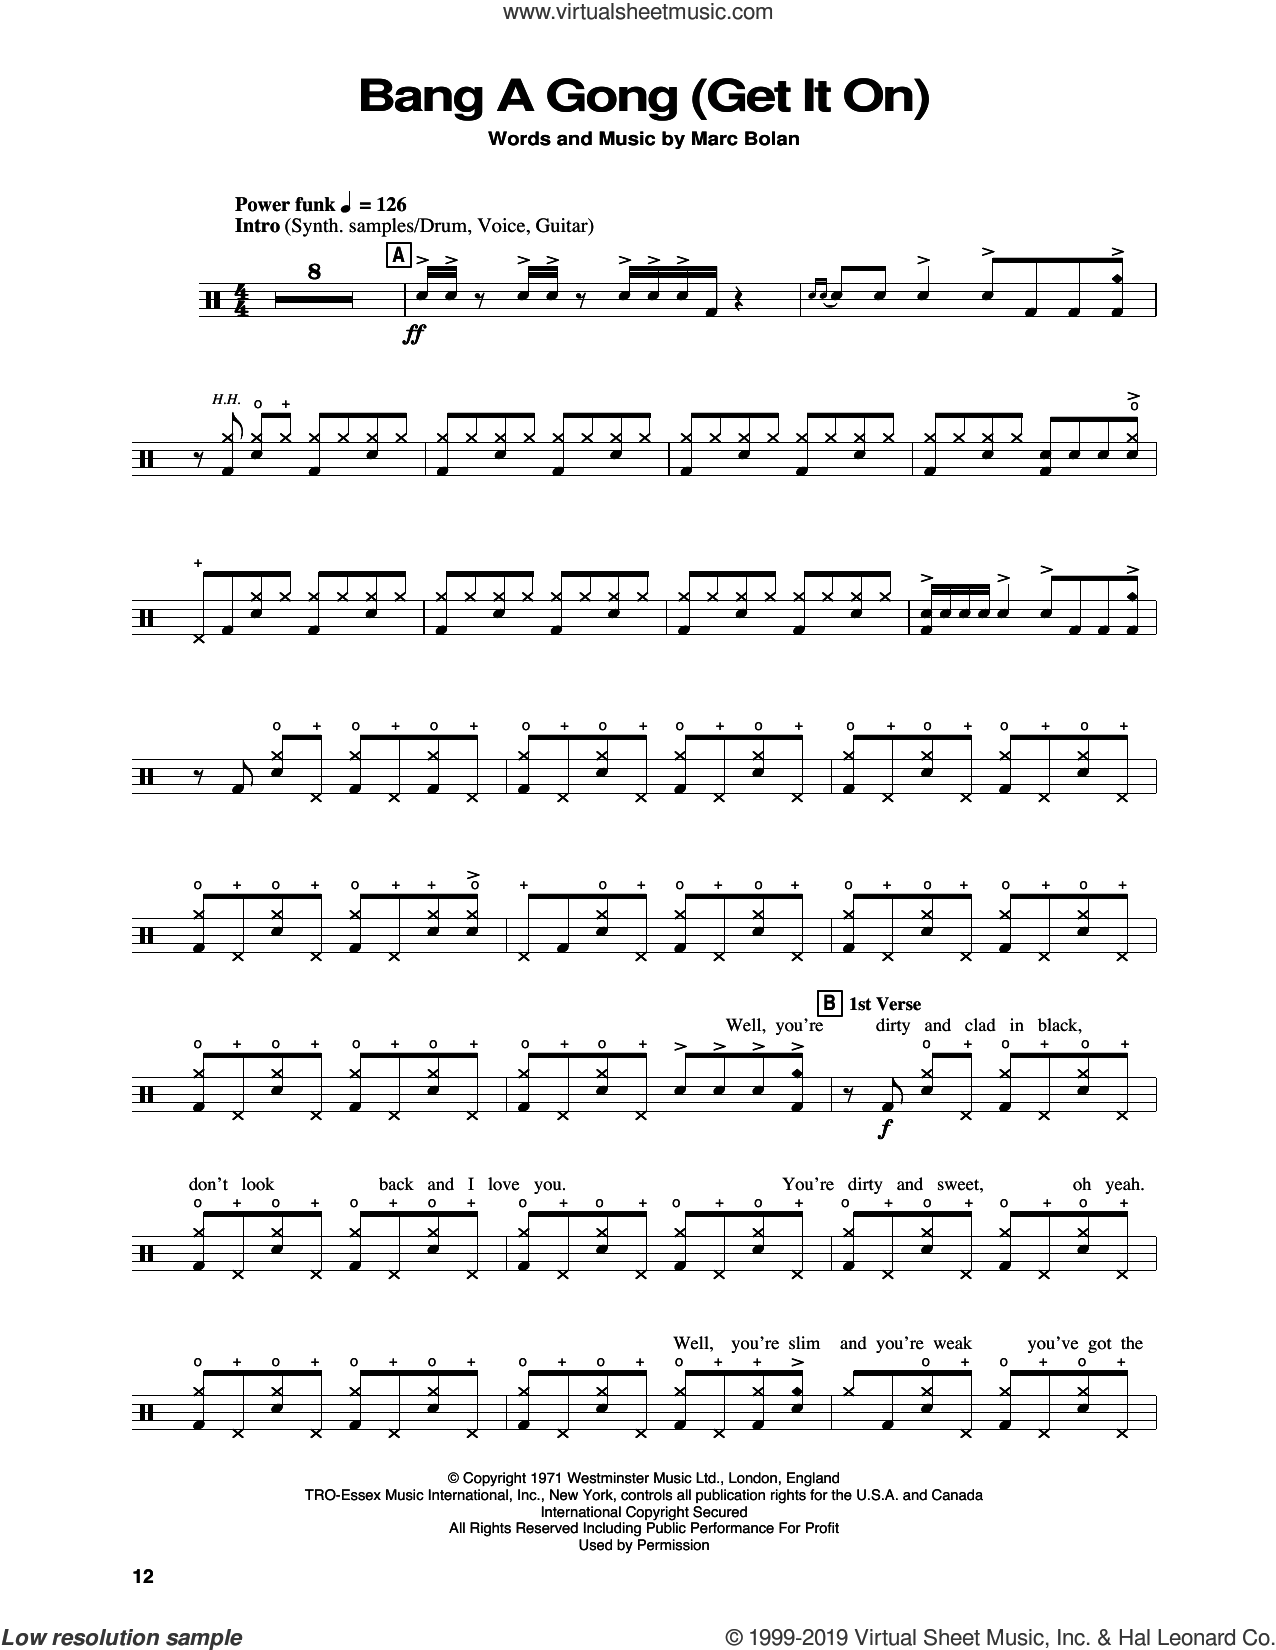 Bang A Gong (Get It On) sheet music for drums by Power Station and Marc Bolan, intermediate skill level